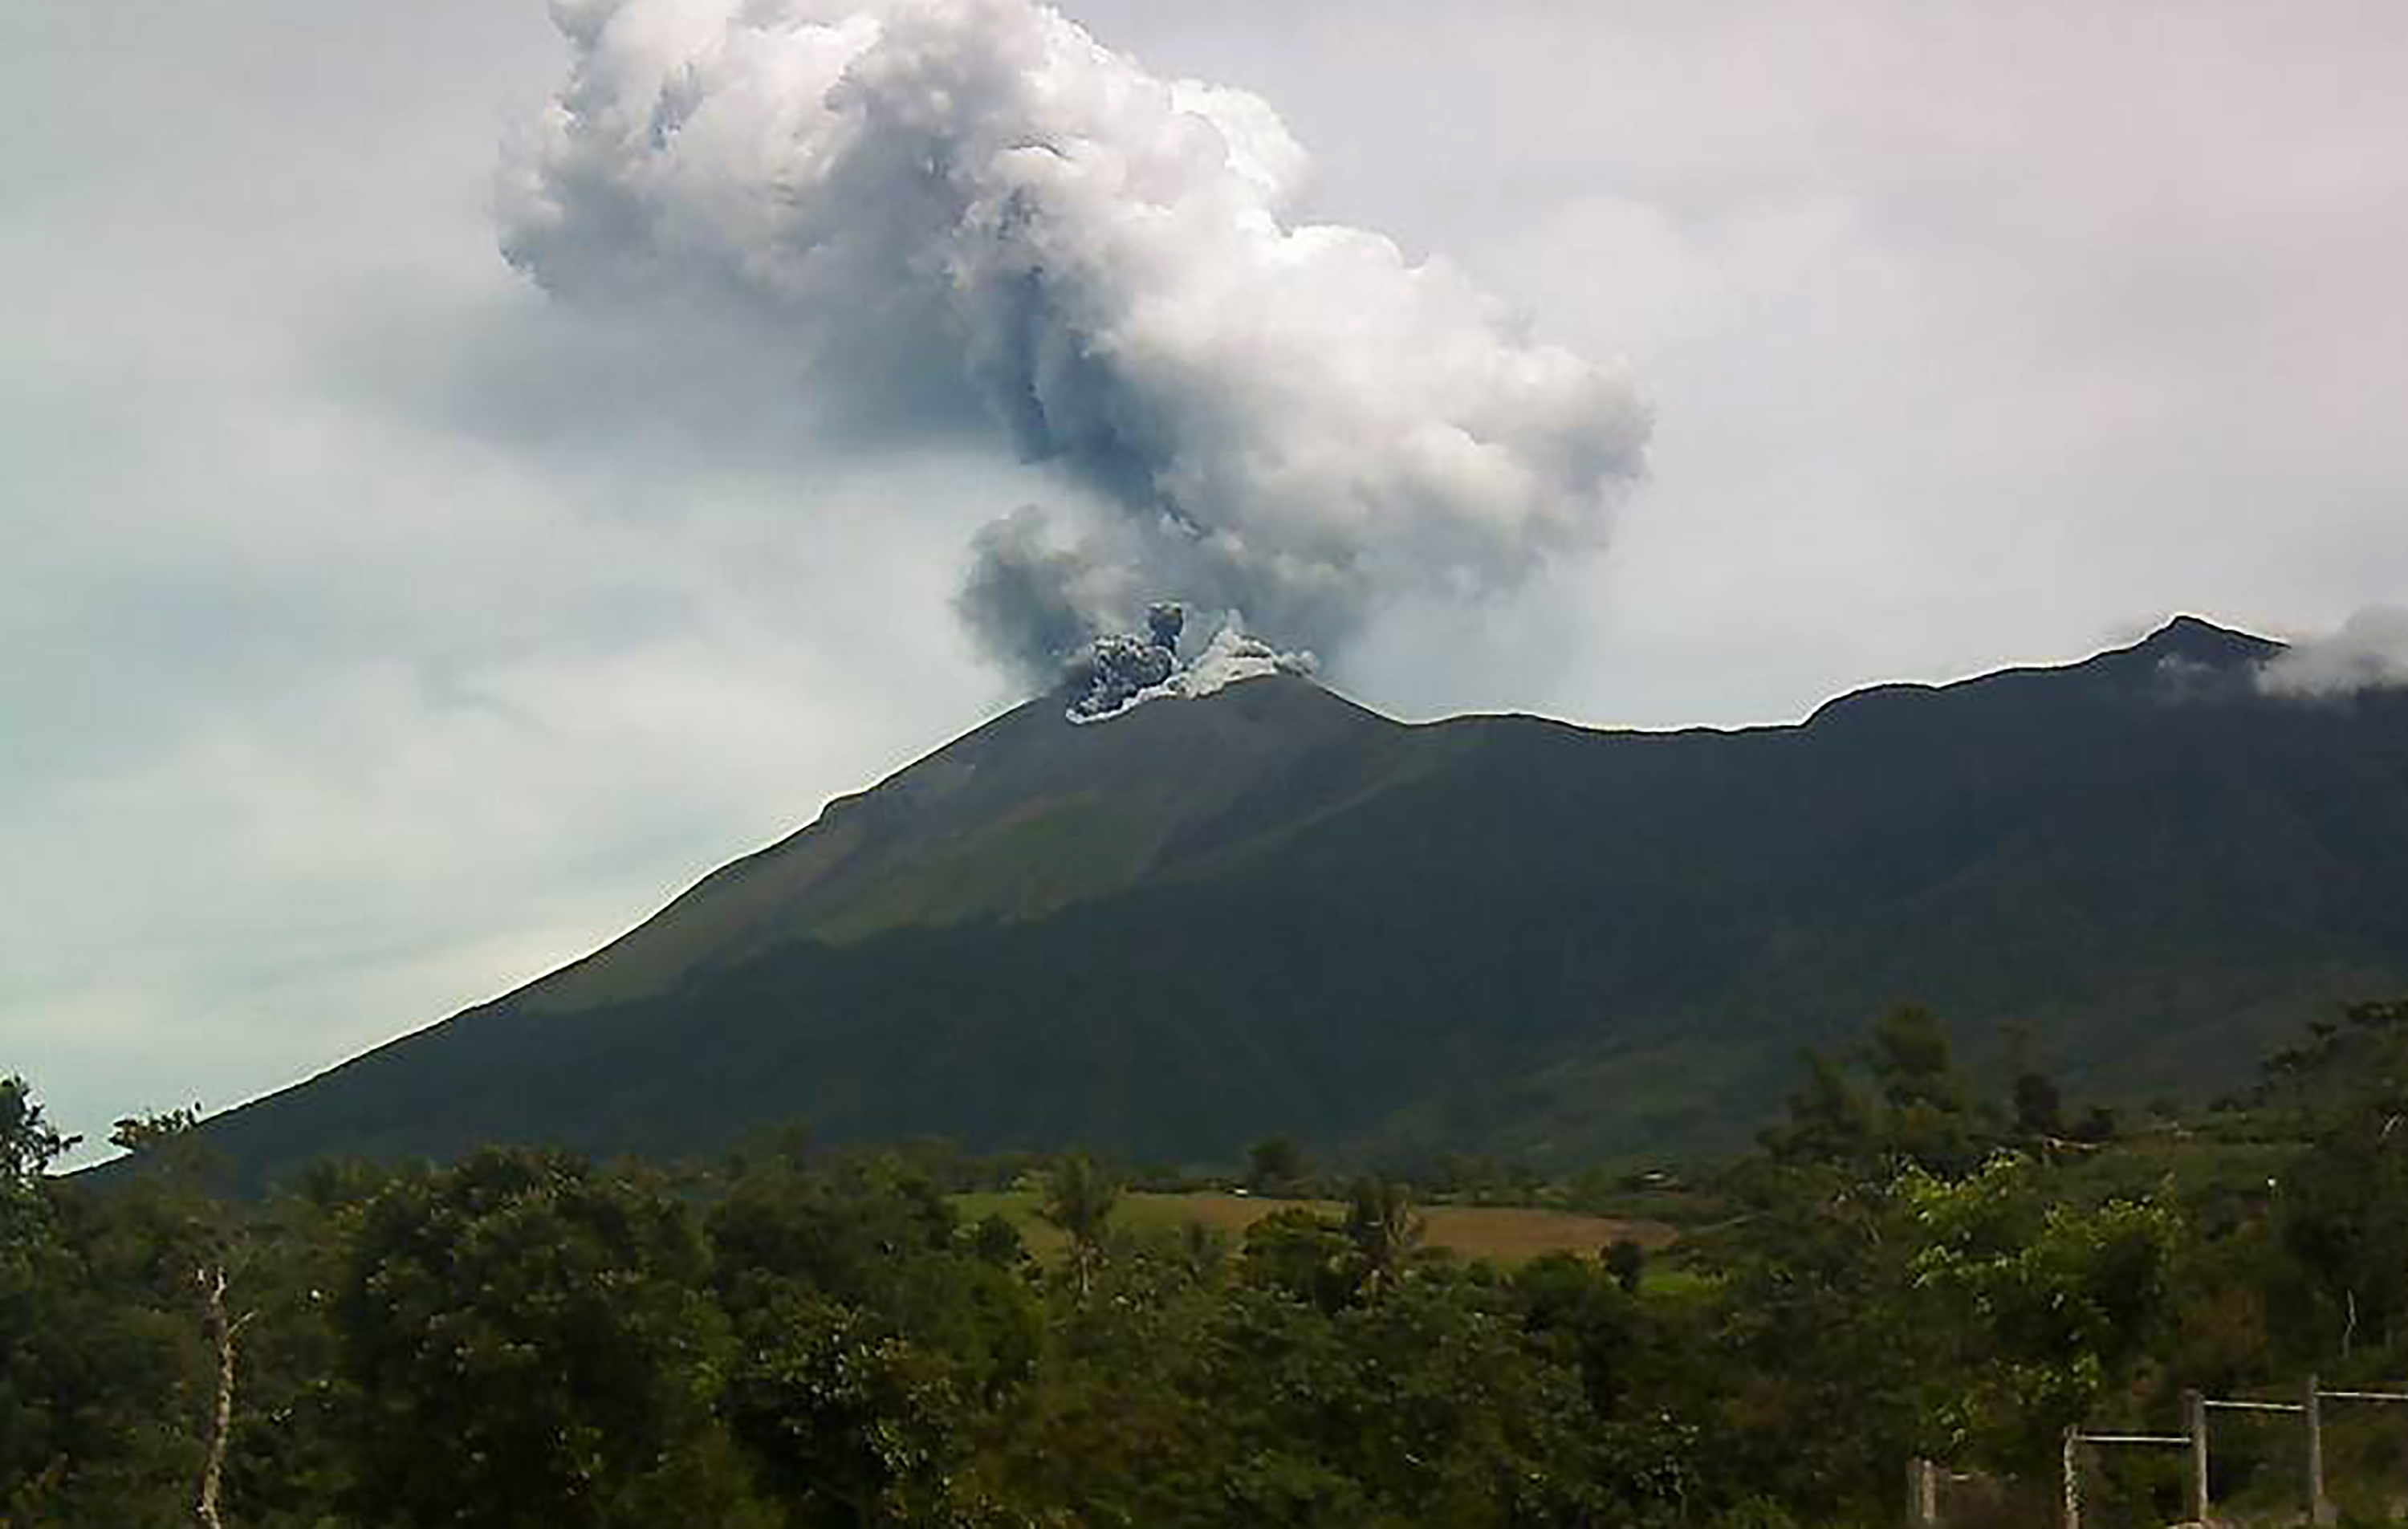 "This handout photo taken on June 18, 2016 and released by Philippines Institute of Volcanology and Seismology (PHIVOLCS) shows Kanlaon volcano as it spewed ash into the air as seen from the observation post of the PHIVOLCS in La Carlota town, Negros Occidental province, central Philippines. Mount Kanlaon, located in the central island of Negros, launched a plume of whitish-grey ash about 1.5 kilometres (almost a mile) into the air, said Kenn John Veracruz of the official Philippine Institute of Volcanology and Seismology. / AFP PHOTO / PHILIPPINES INSTITUTE OF VOLCANO / RESTRICTED TO EDITORIAL USE - MANDATORY CREDIT ""AFP PHOTO / PHILIPPINES INSTITUTE OF VOLCANOLOGY AND SEIMOLOGY"" - NO MARKETING NO ADVERTISING CAMPAIGNS - DISTRIBUTED AS A SERVICE TO CLIENTS"